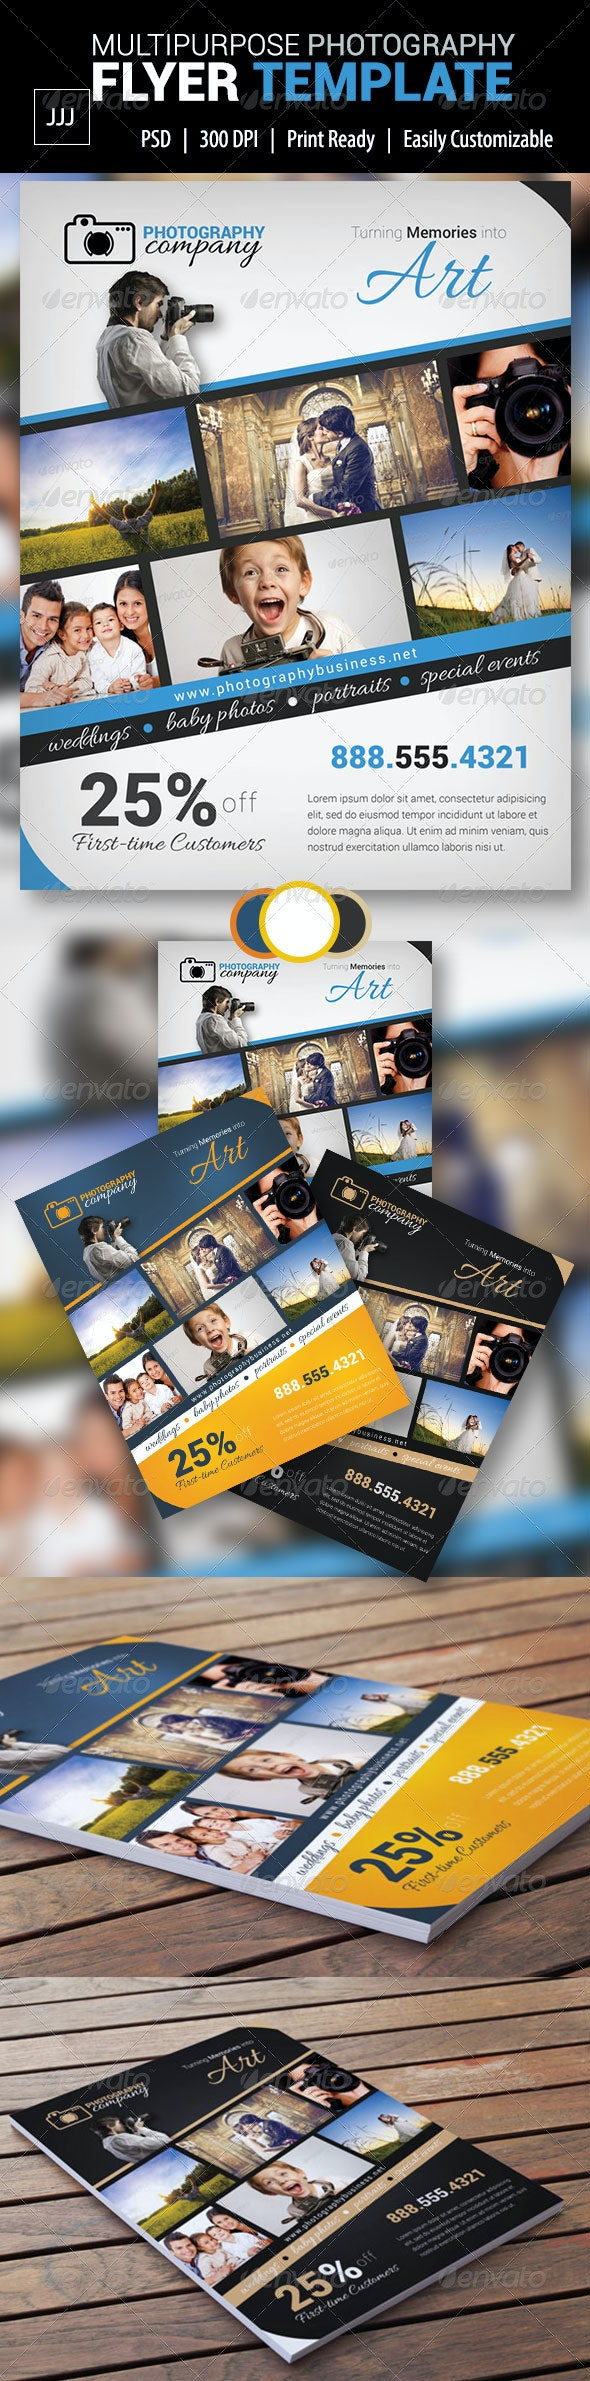 Photography Business Flyer 8 - Corporate Flyers